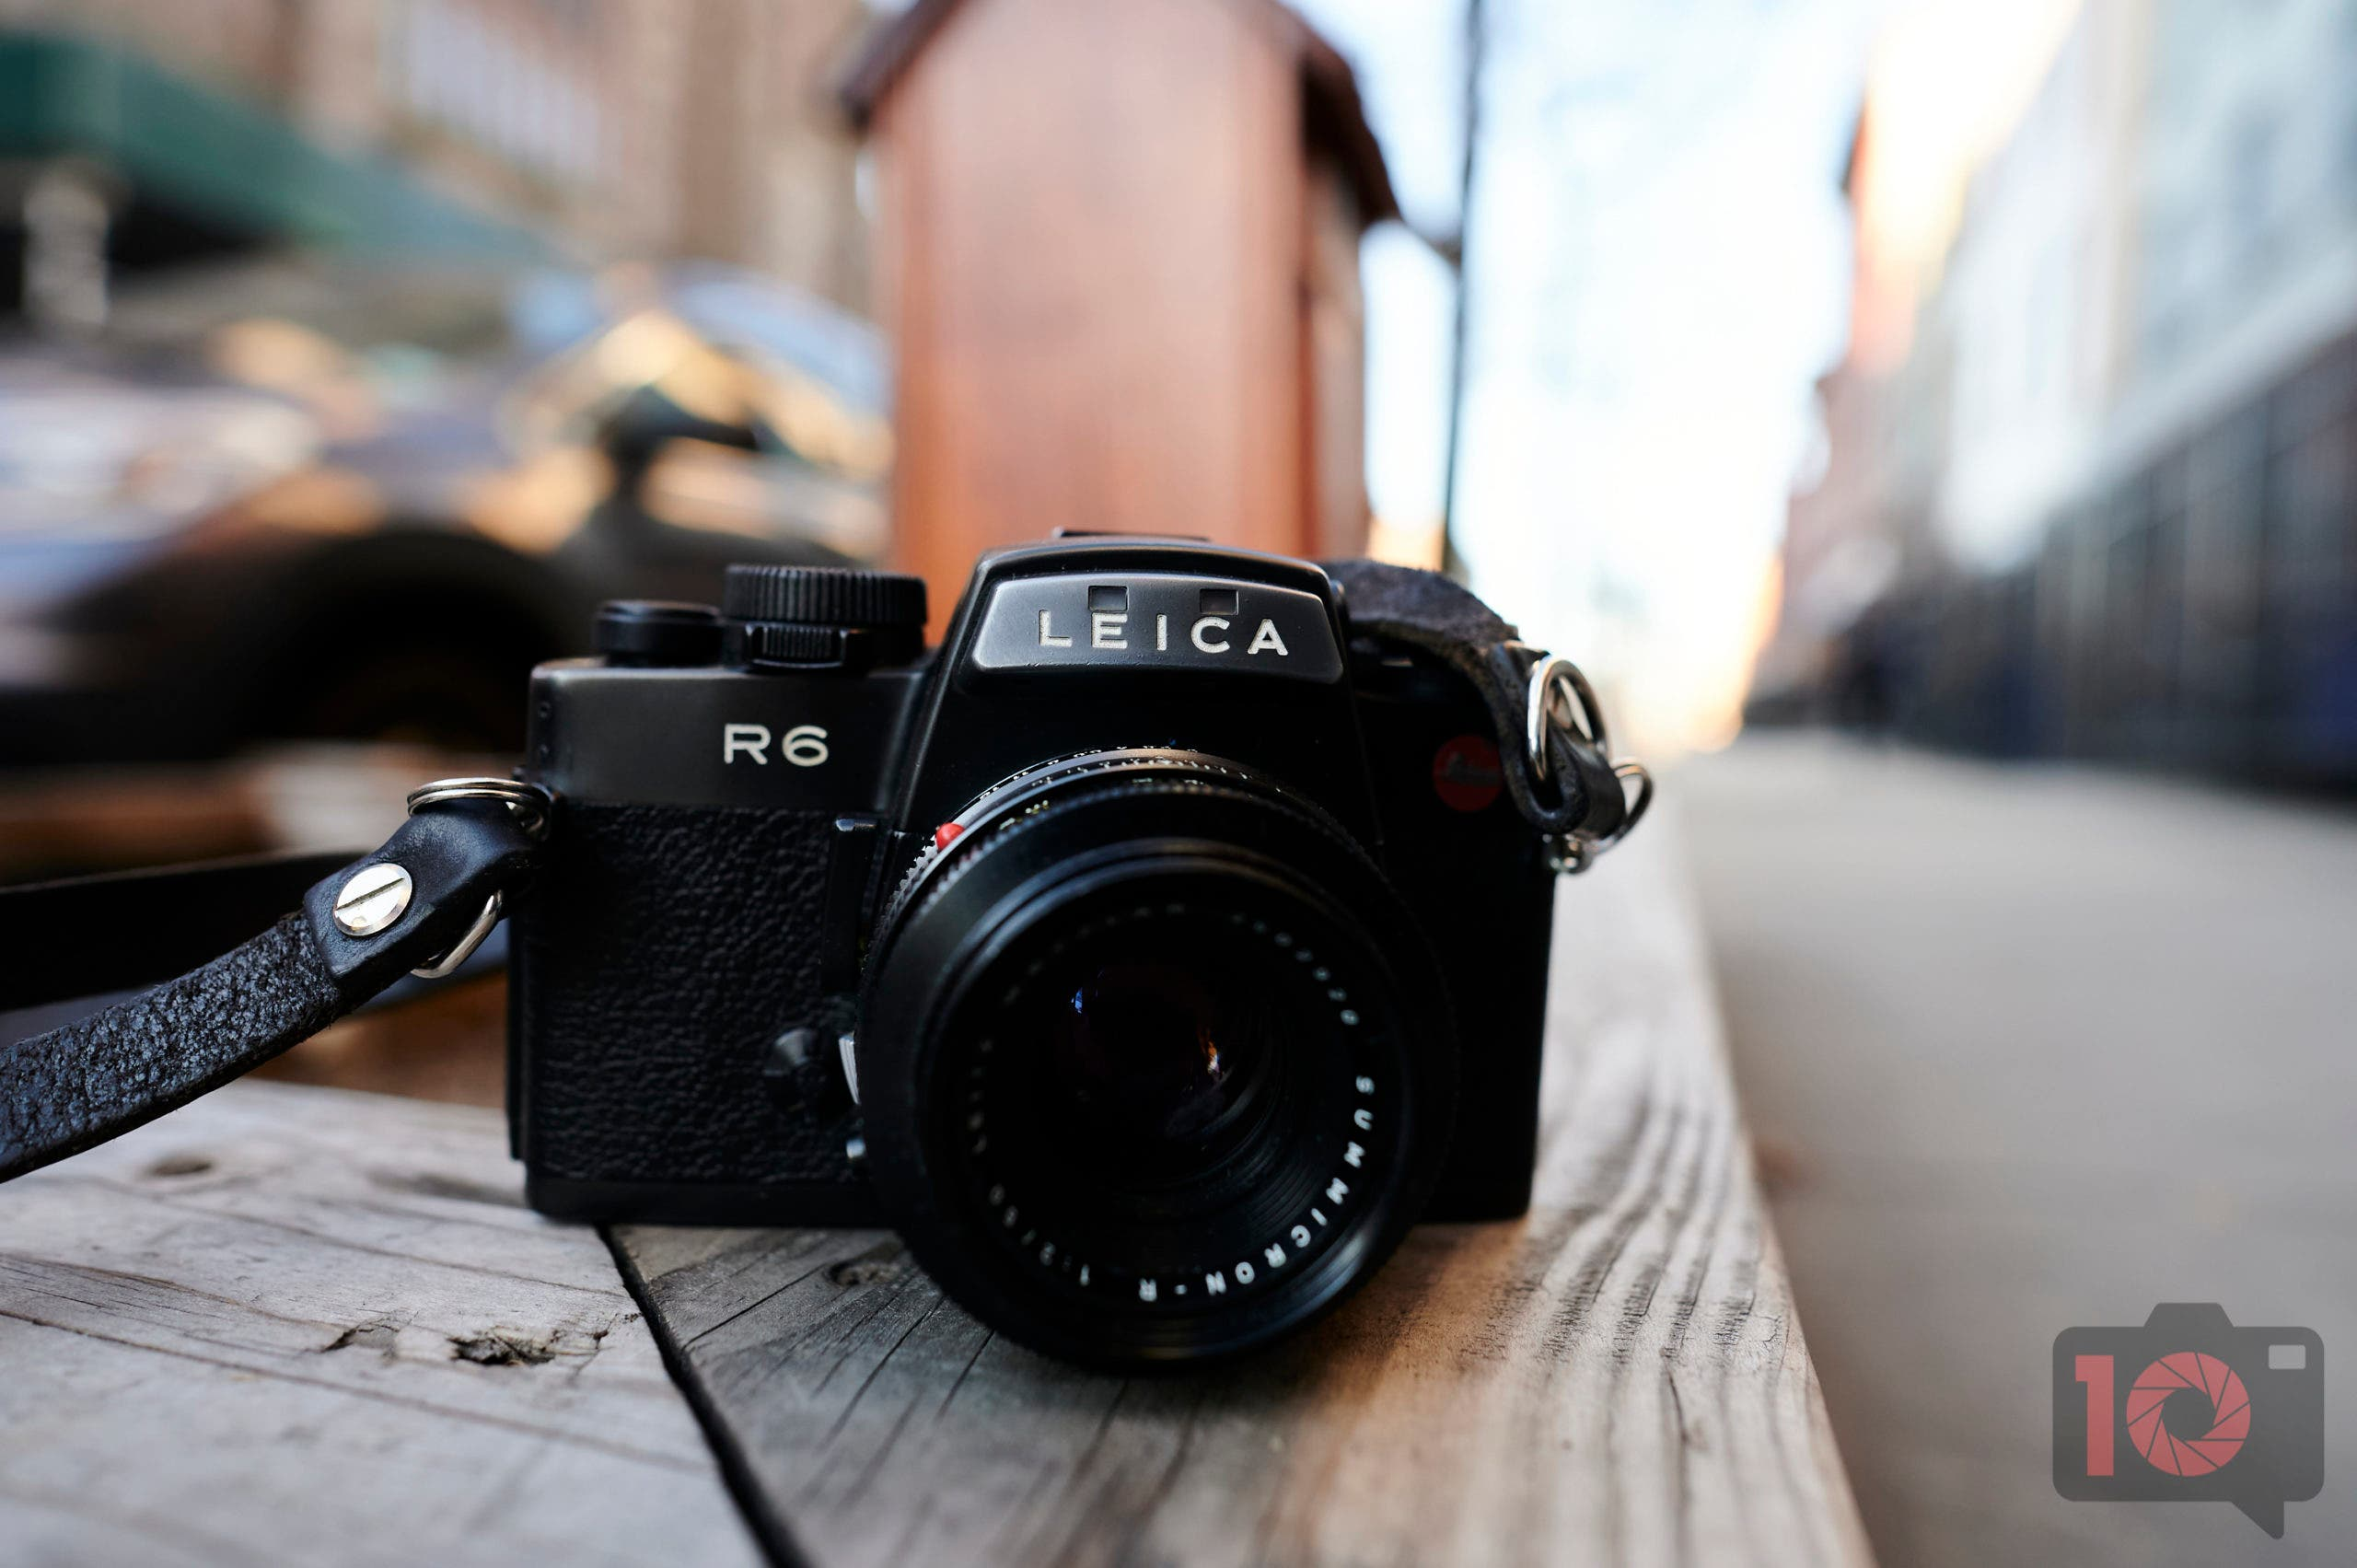 How to Buy Used and Refurbished Cameras and Lenses